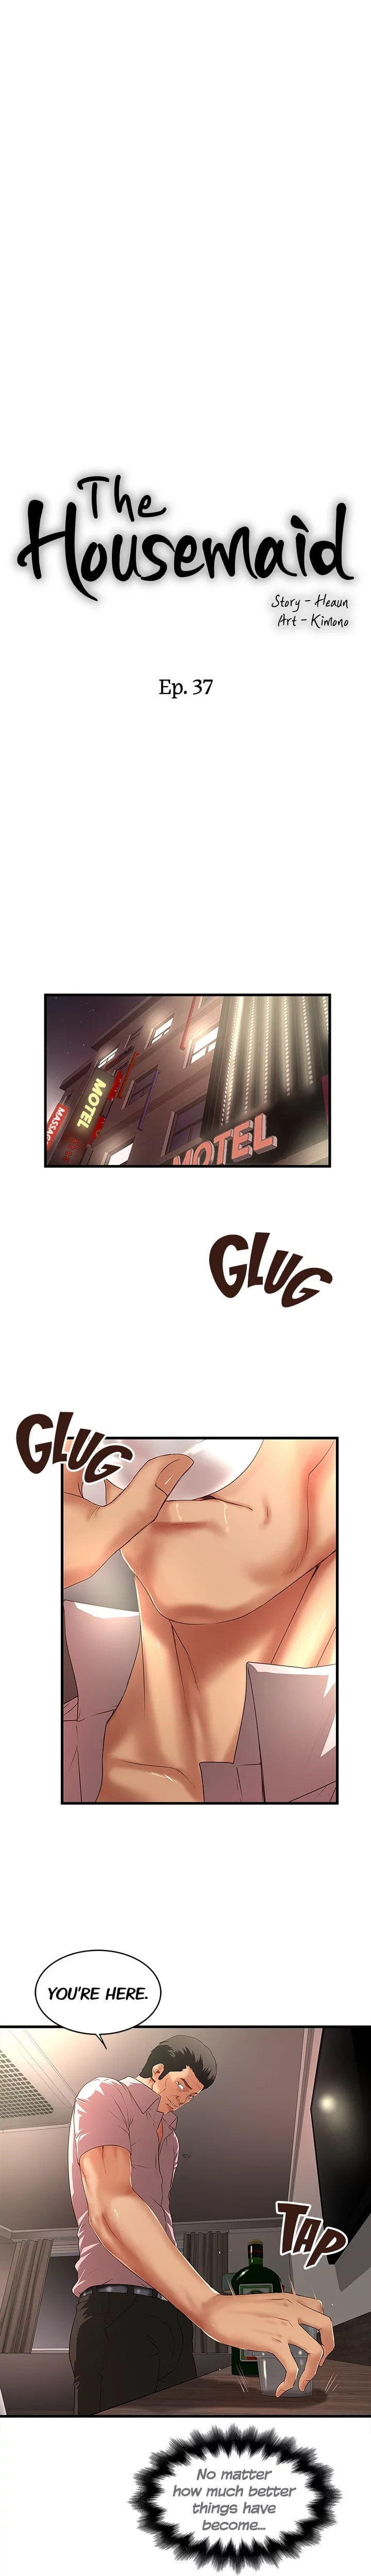 The Housemaid - chapter 37 - #2